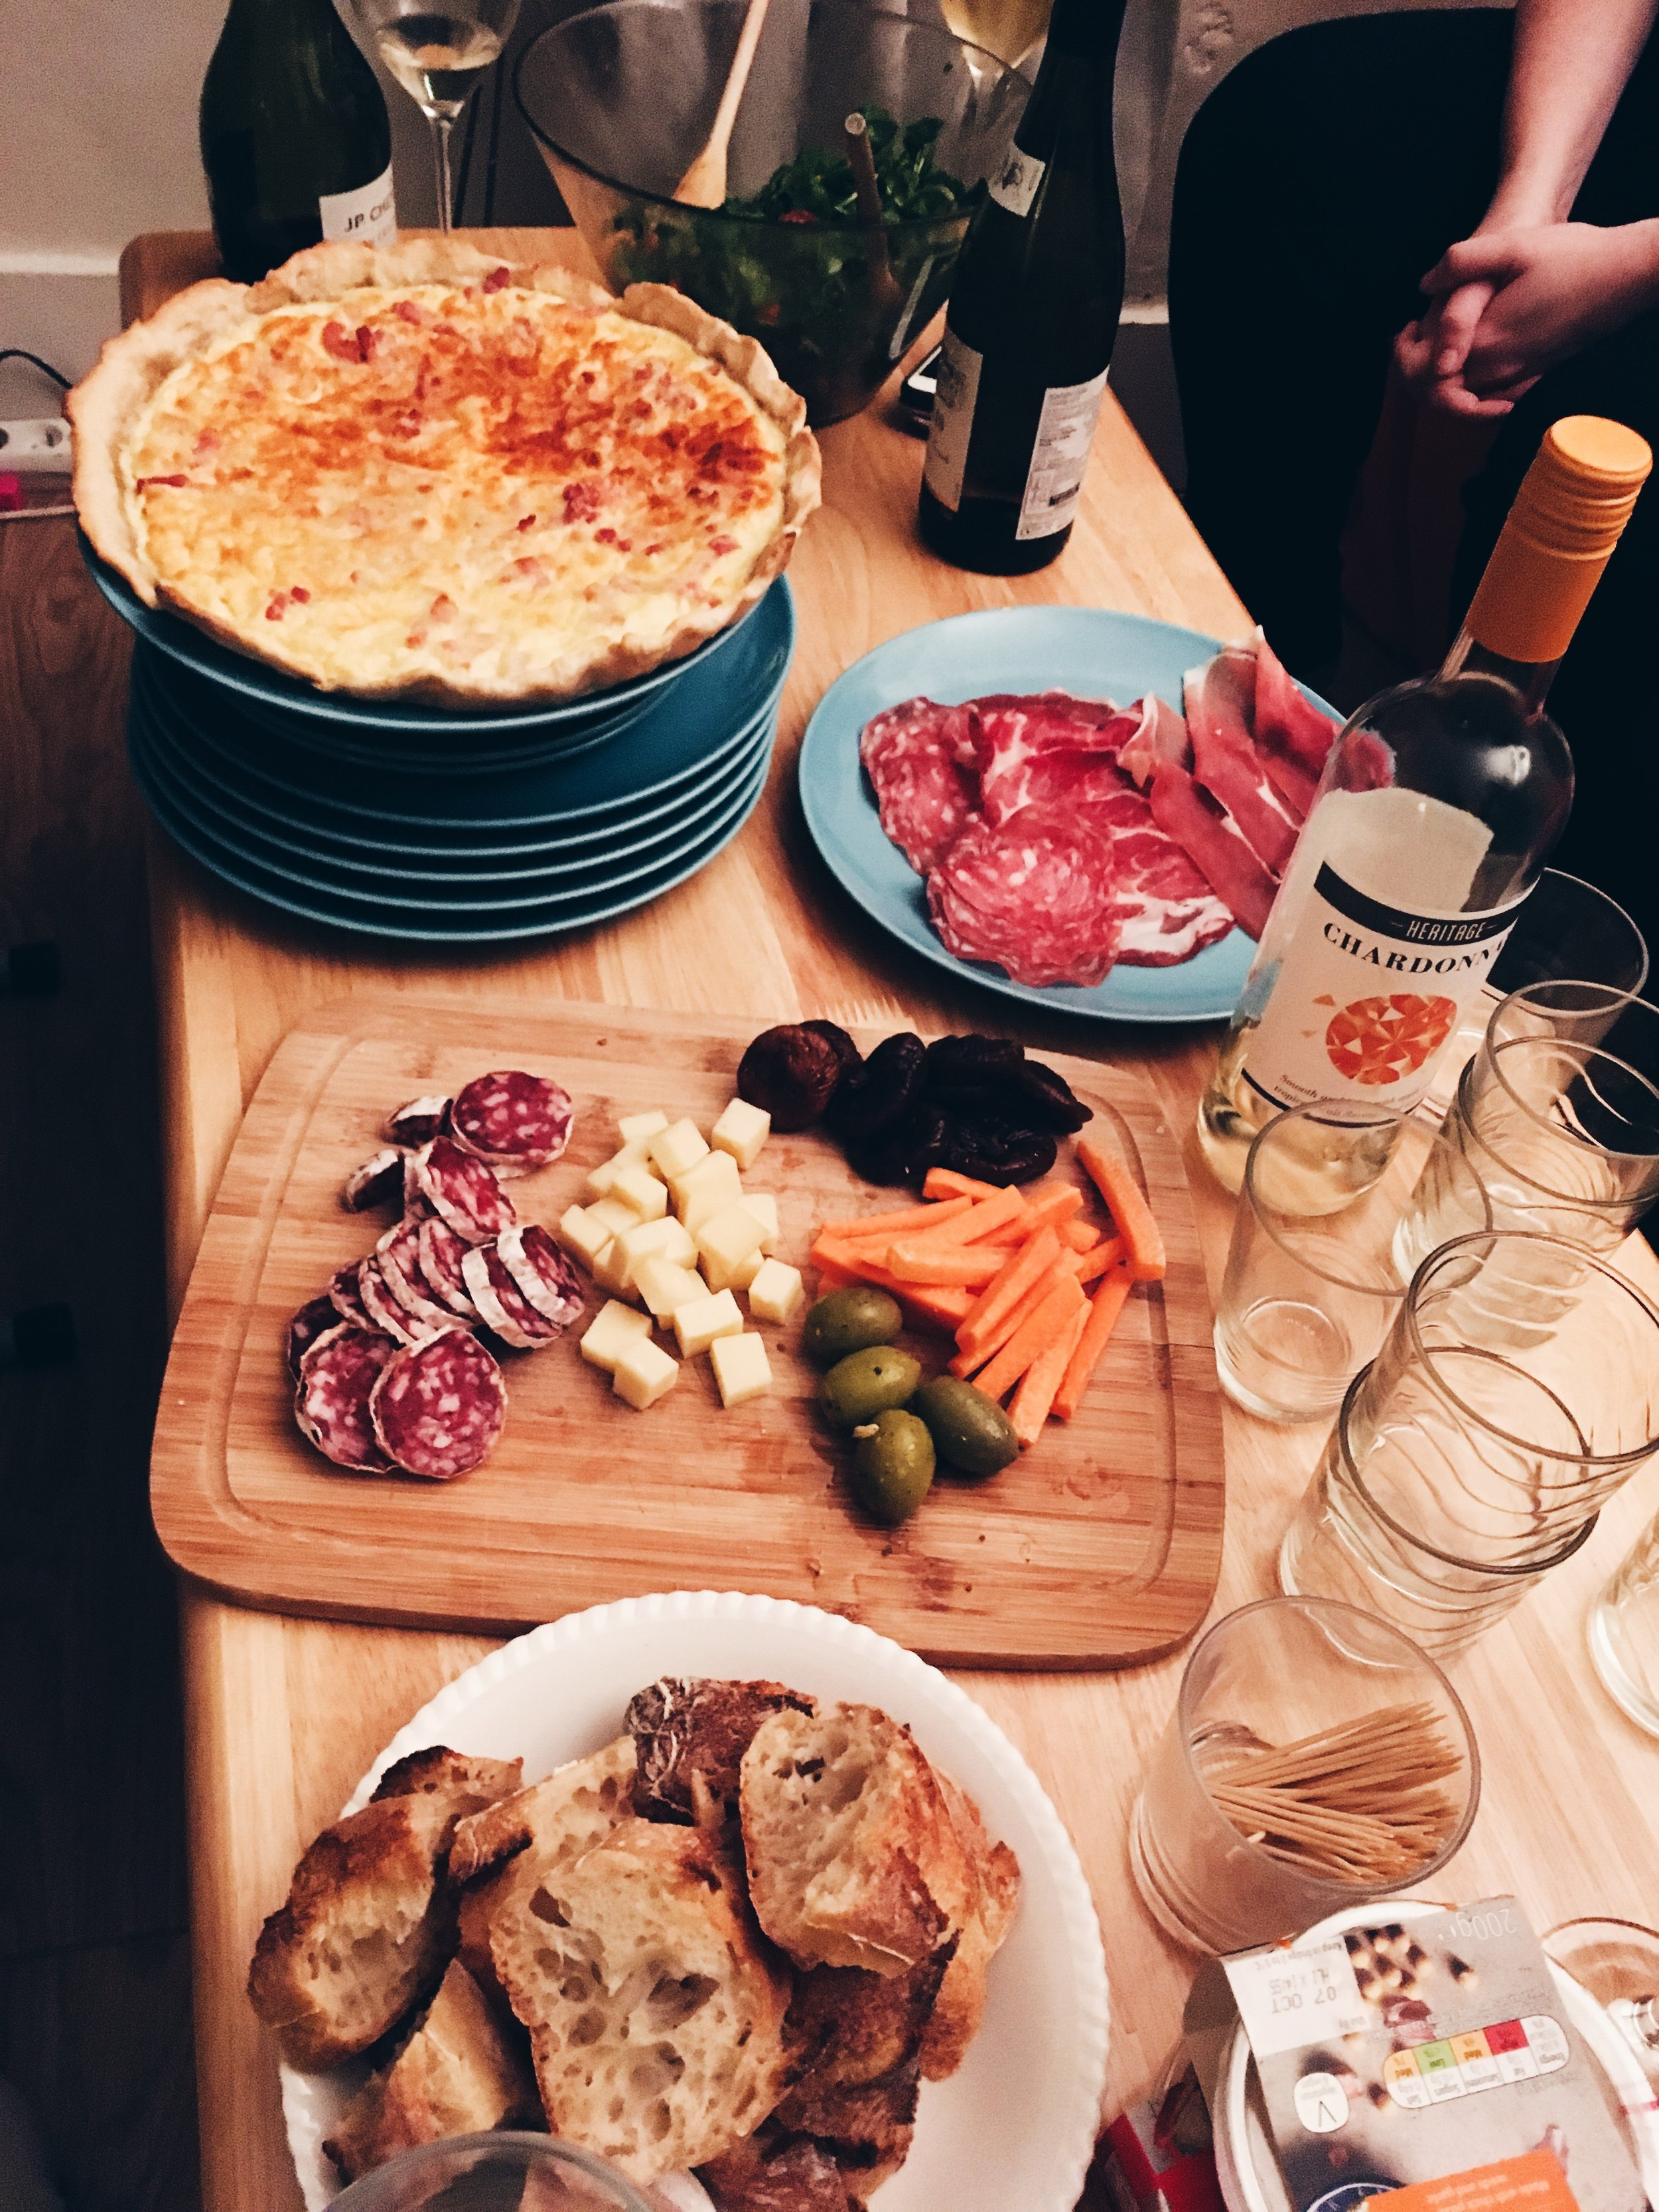 Luckily my new friends all share my passion for good food and the finer things in life!  Wine 🍷, Cheese 🧀, and charcuterie 🥓 🥖 parties!😍🤤😀